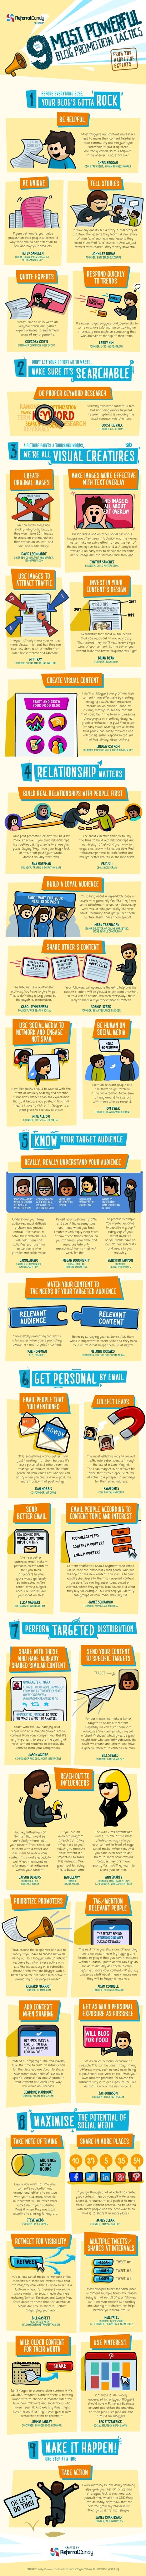 How to Promote Your Stories Effectively #Infographic | digital marketing strategy | Scoop.it